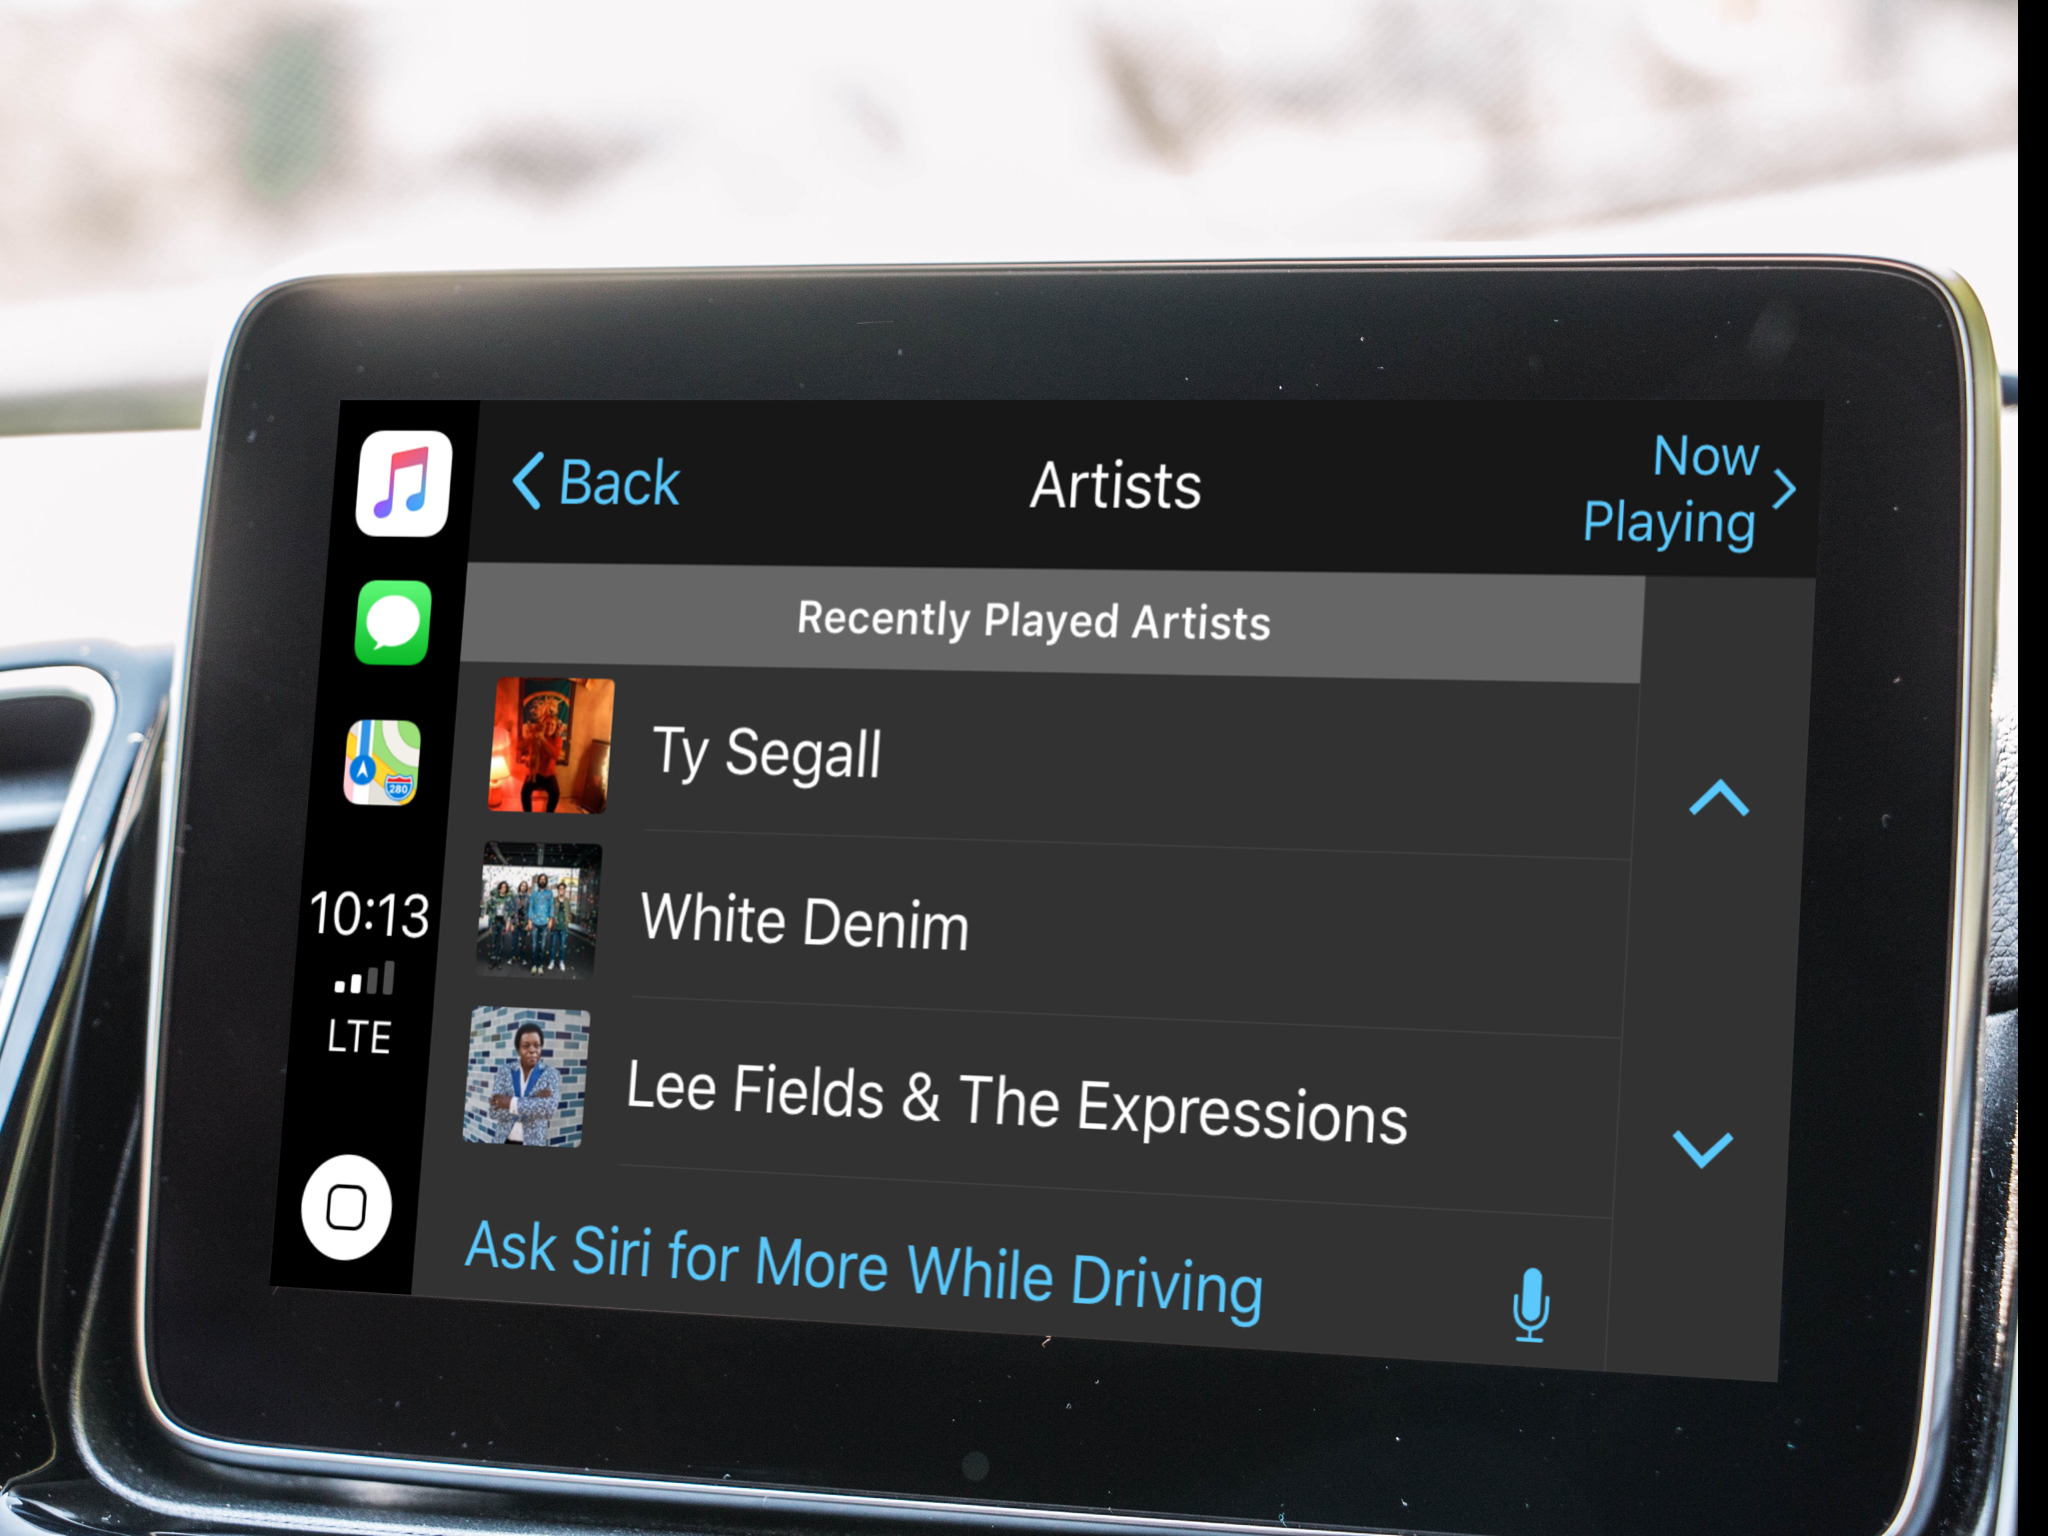 Limited music list with Siri button